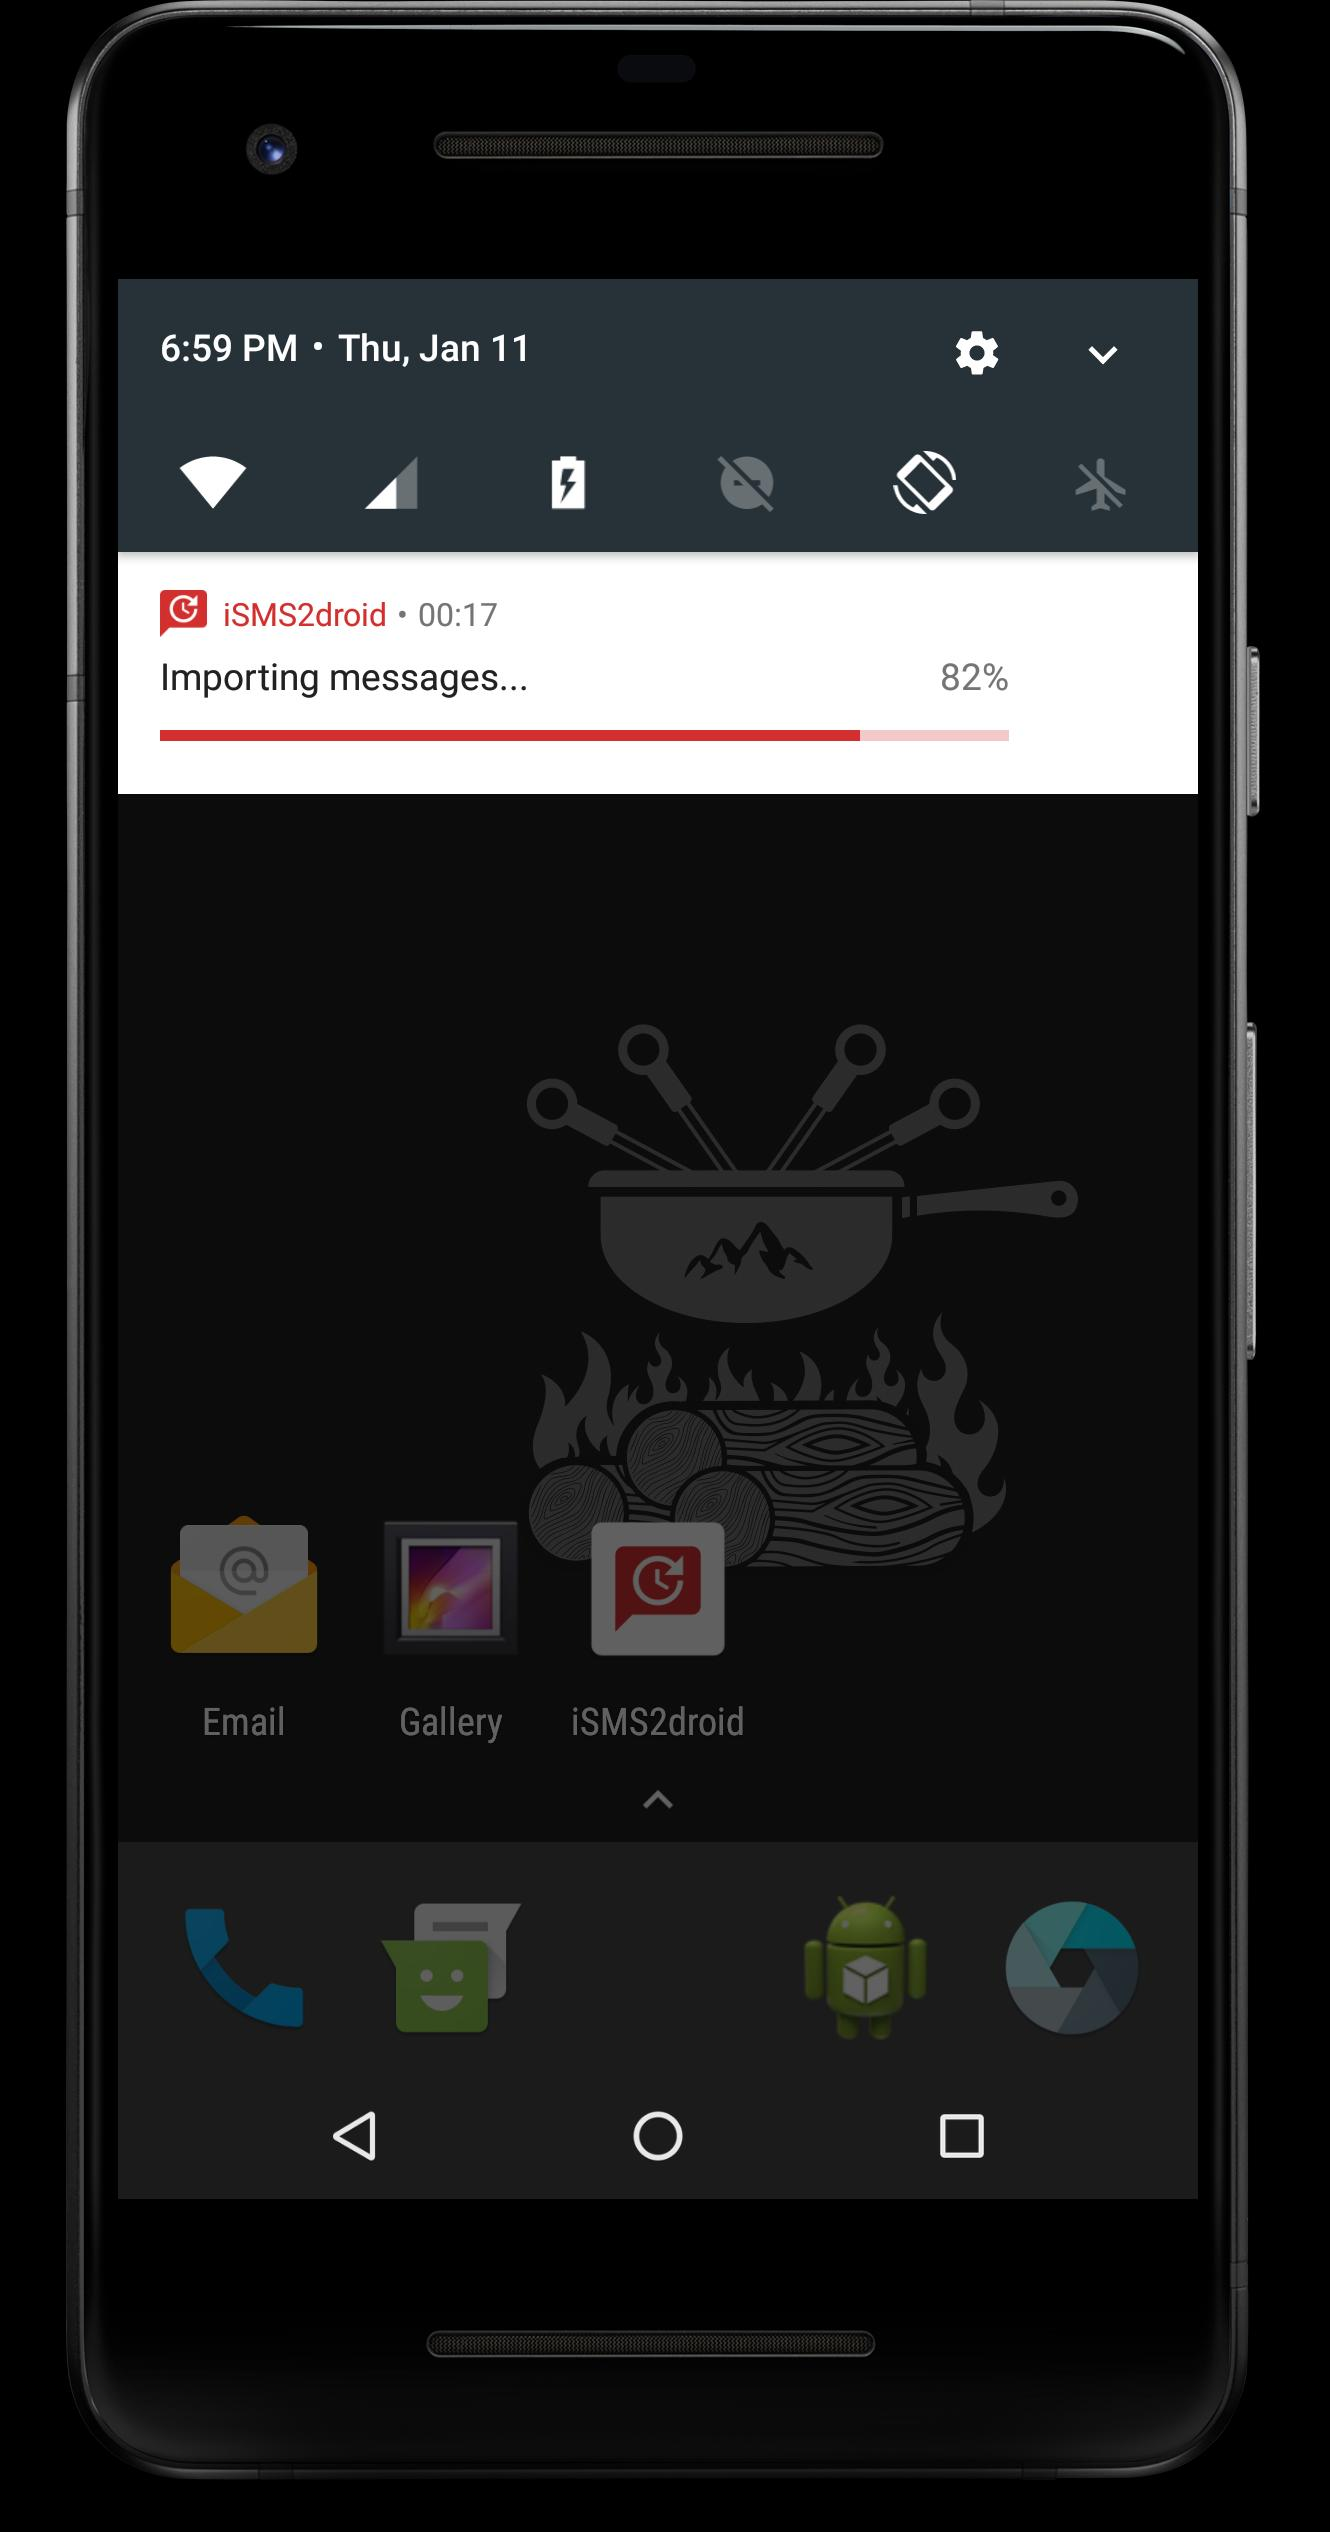 iSMS2droid for Android - APK Download